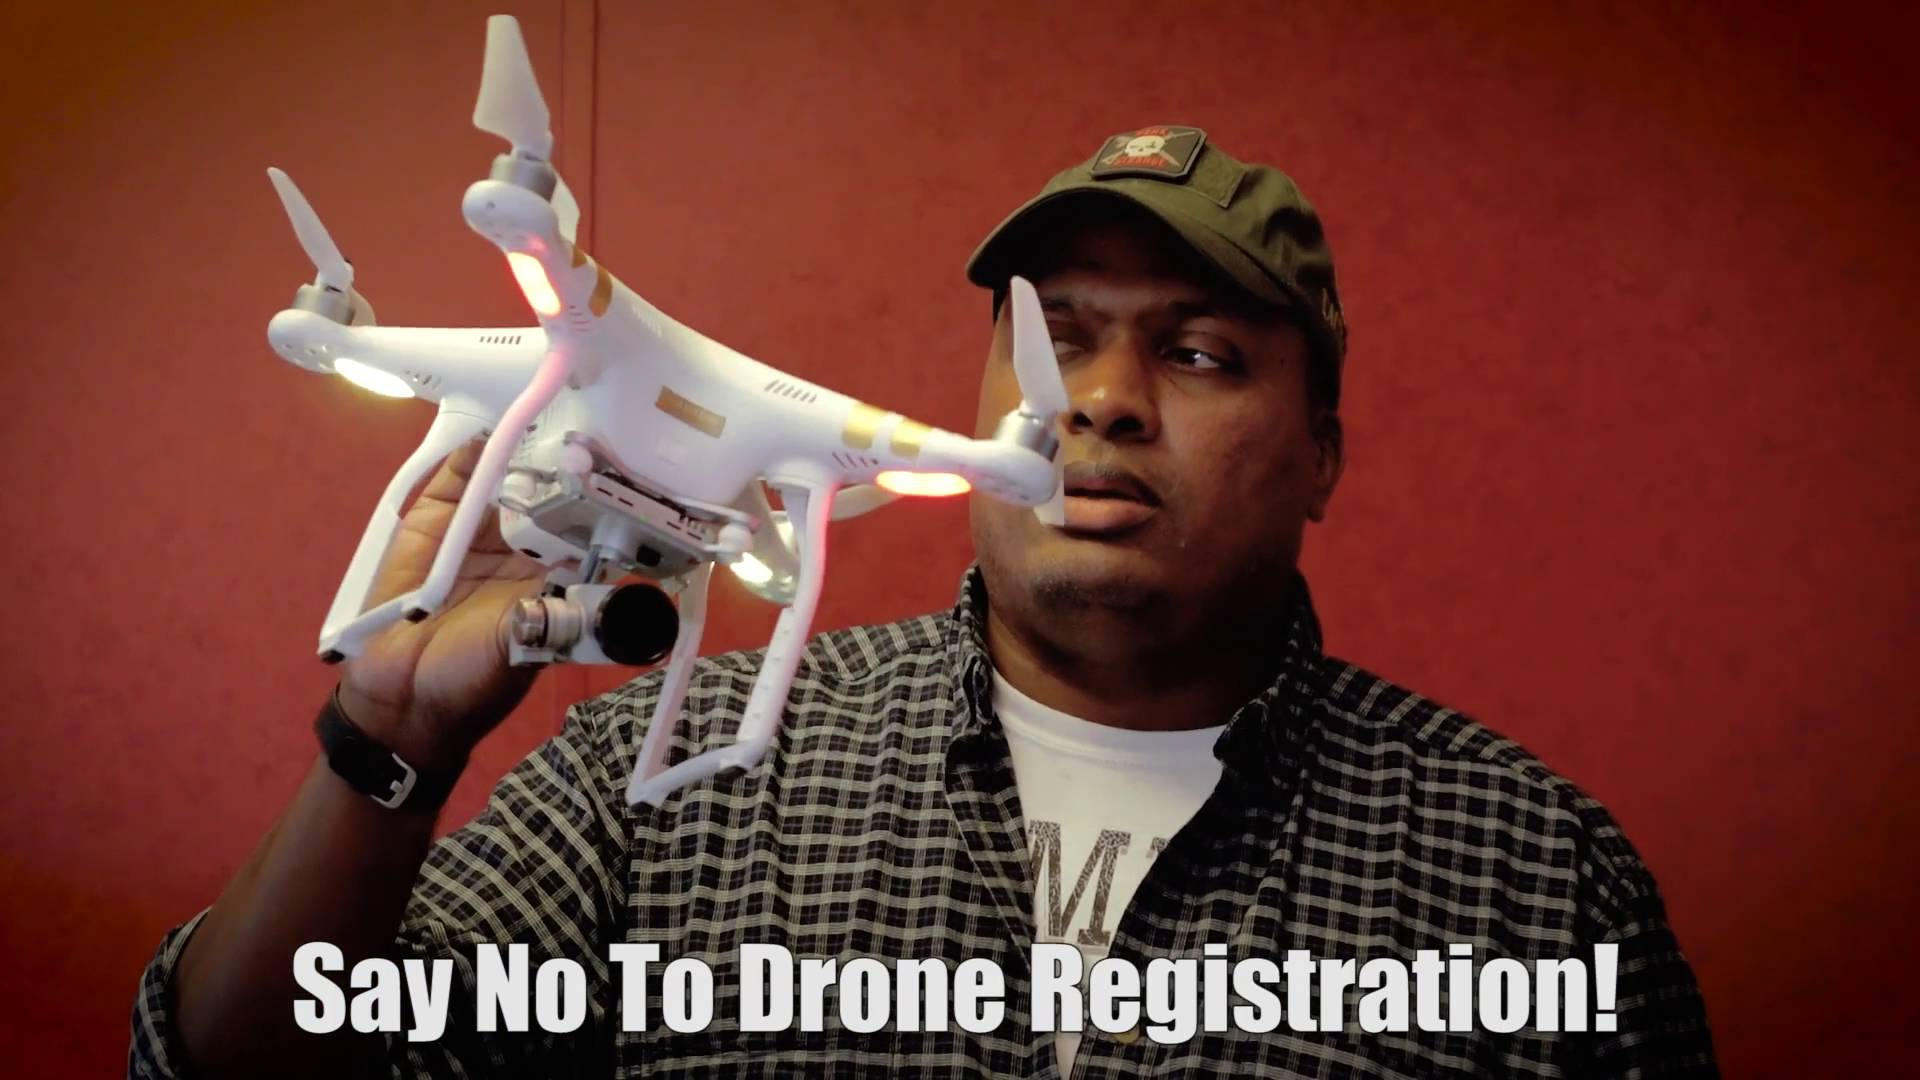 Drone Laws : Just Say No To Registration